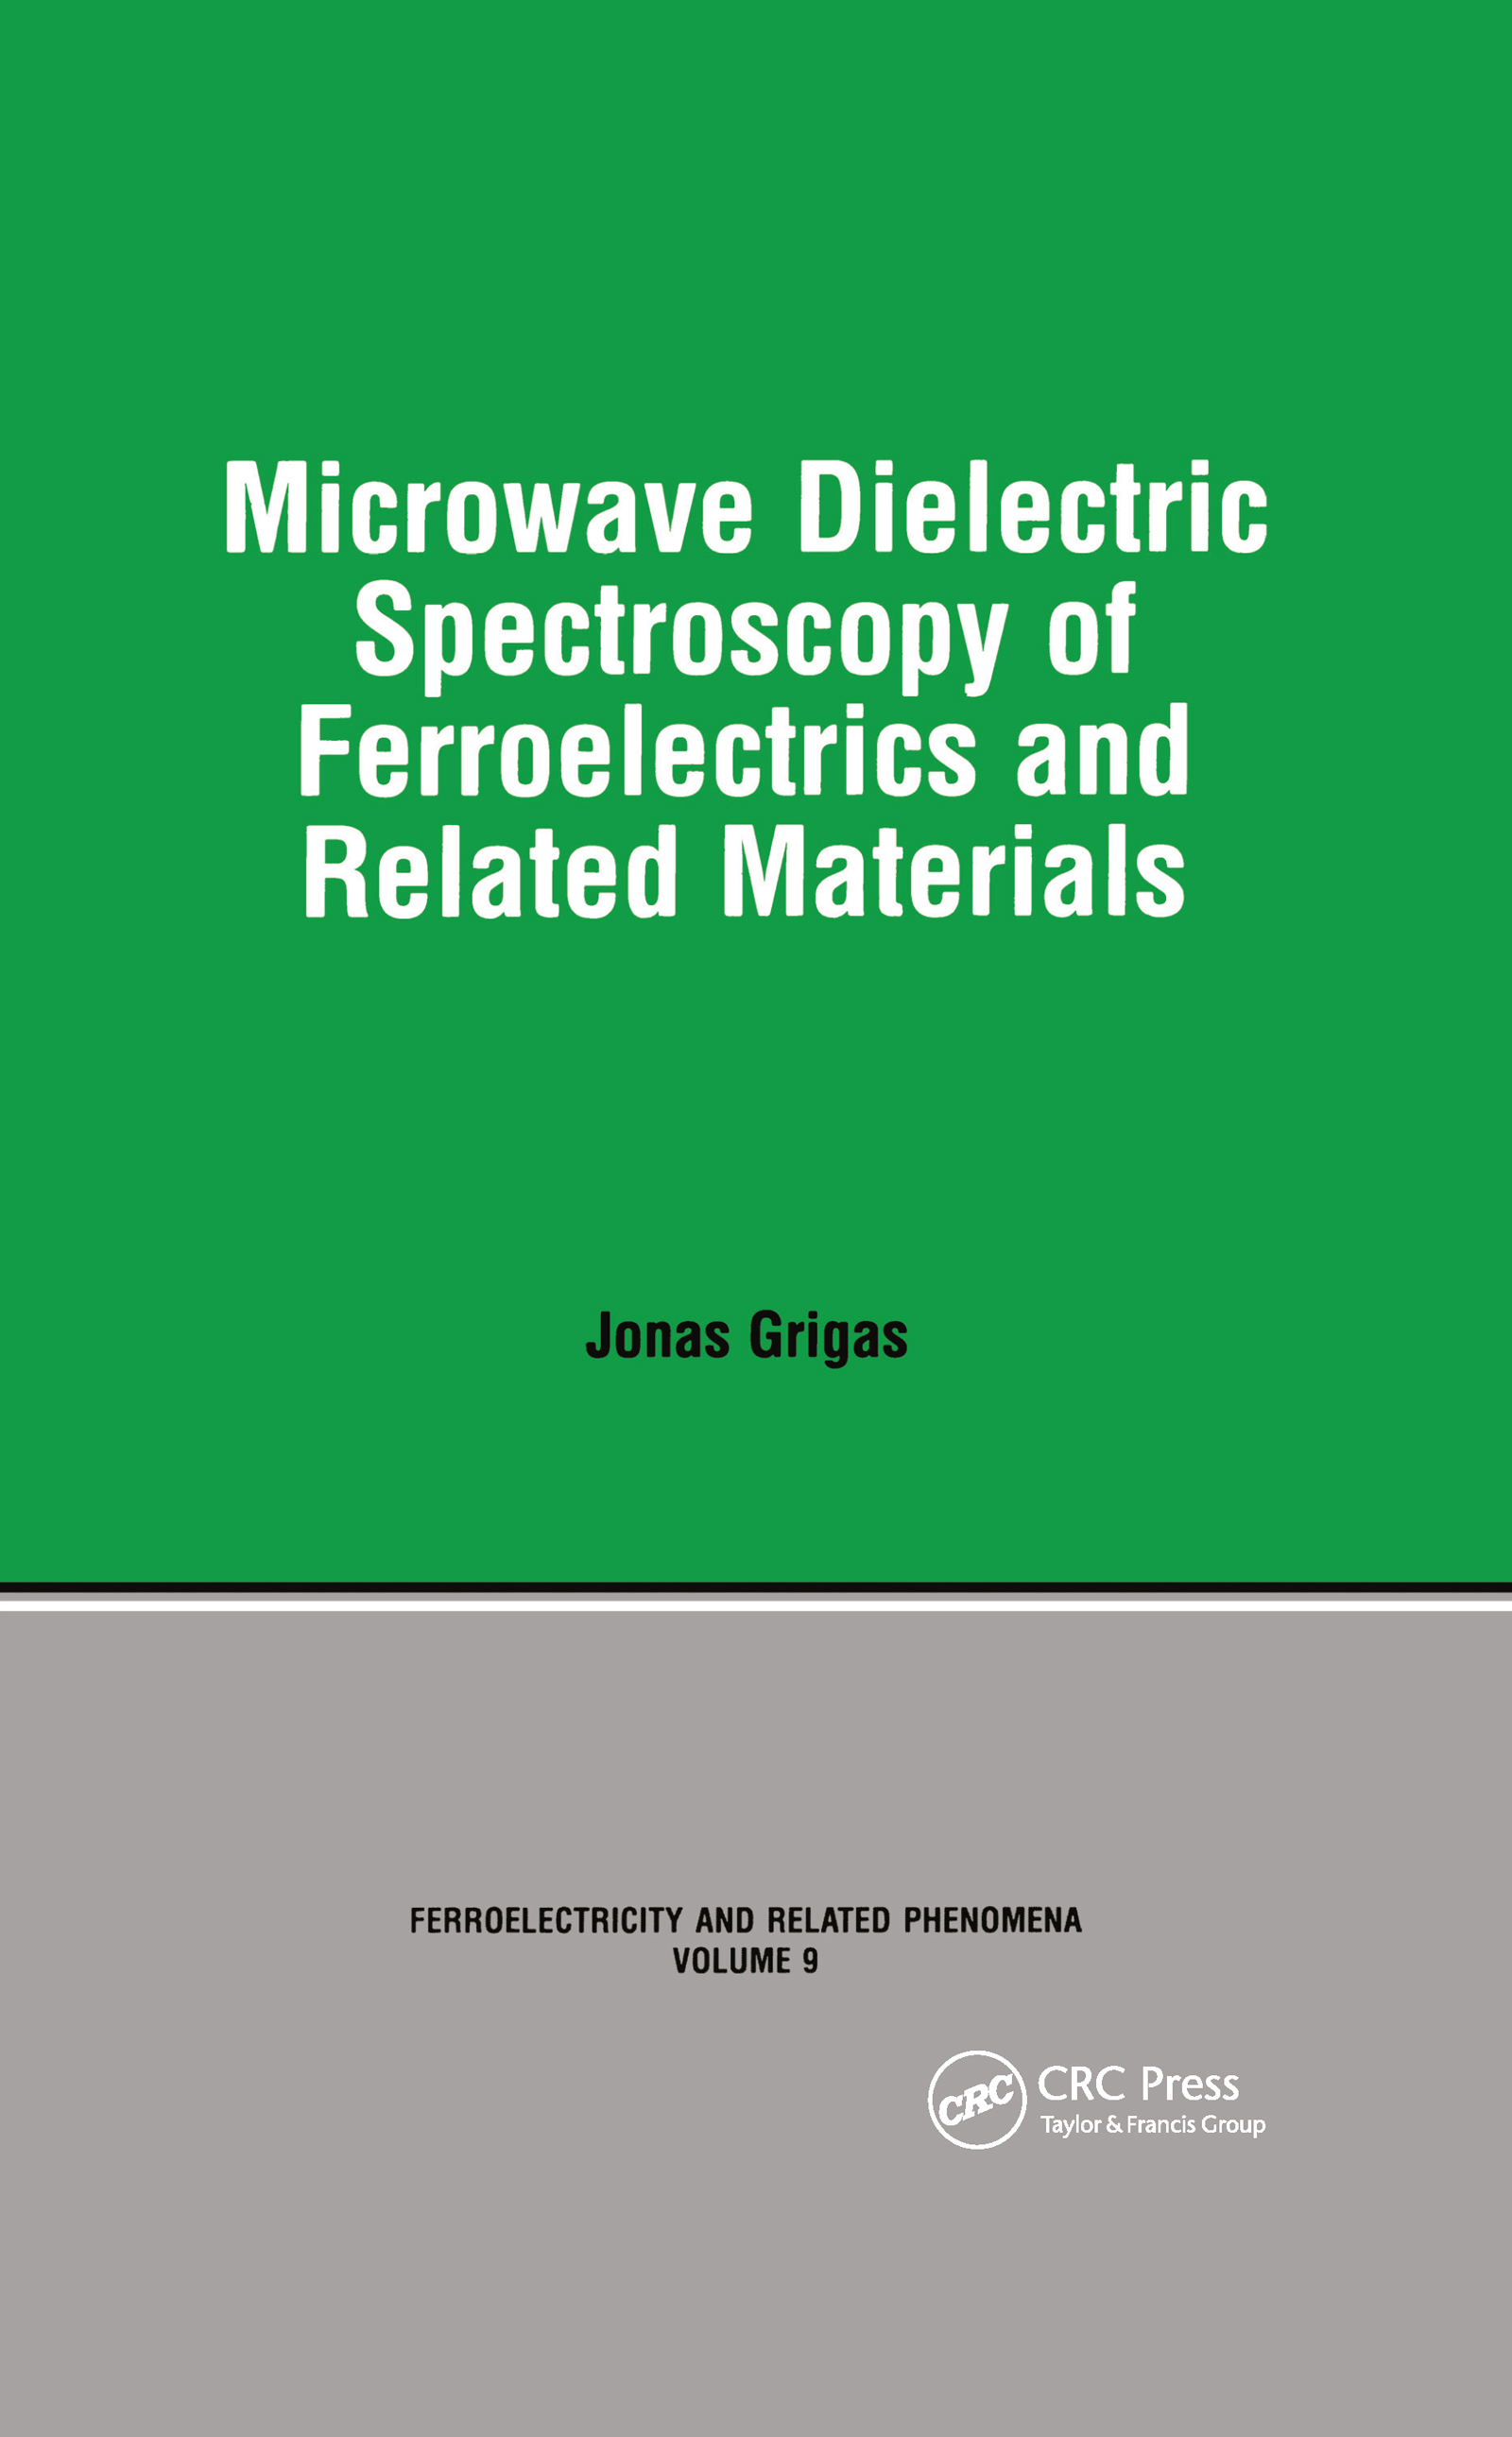 Microwave Dielectric Spectroscopy of Ferroelectrics and Related Materials: 1st Edition (Hardback) book cover